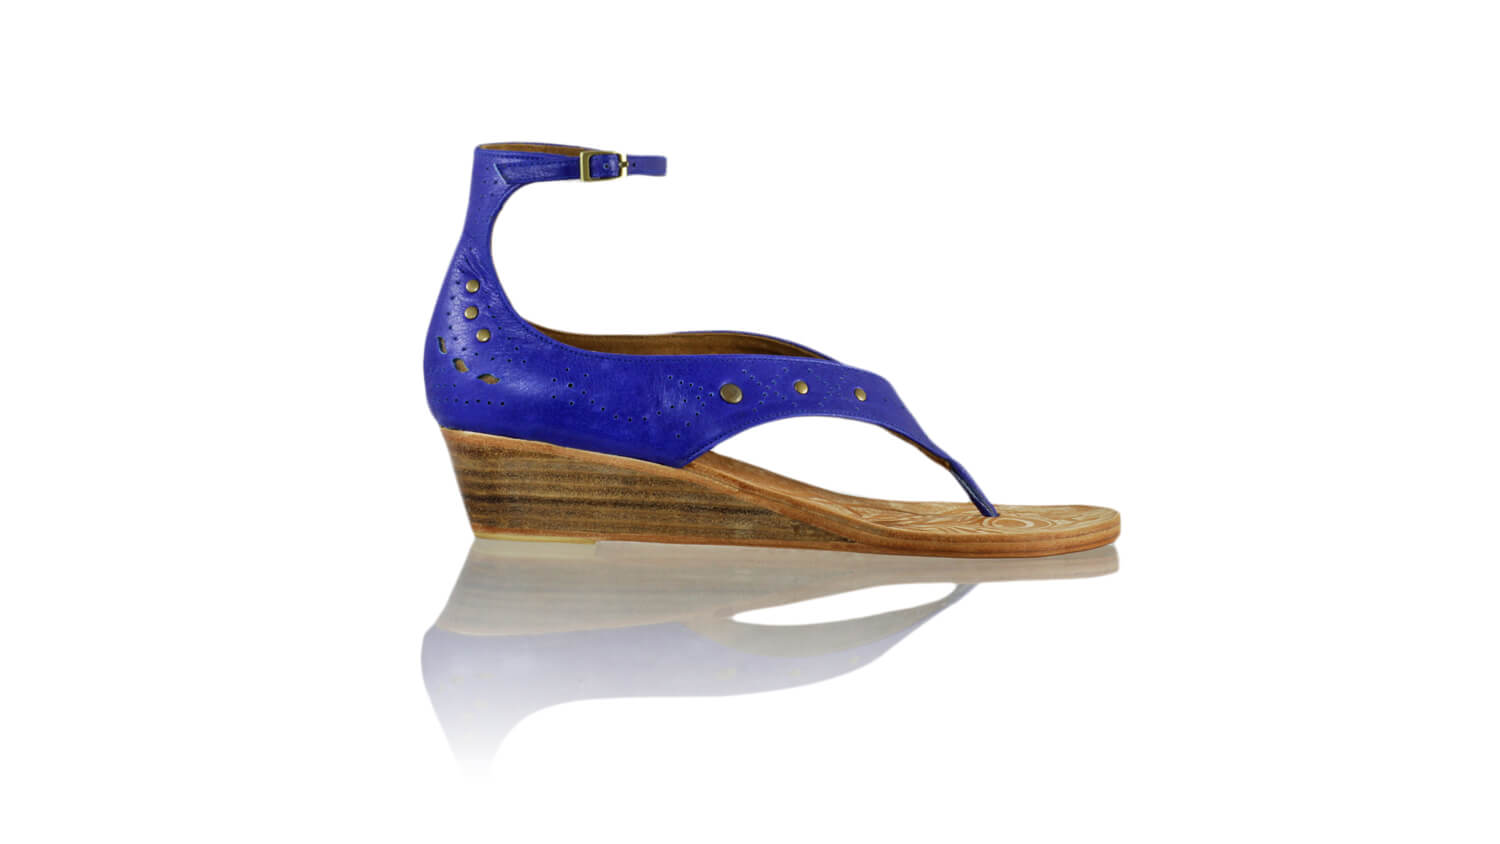 Leather-shoes-Miranda 35mm Wedge - Blue-sandals wedges-NILUH DJELANTIK-NILUH DJELANTIK